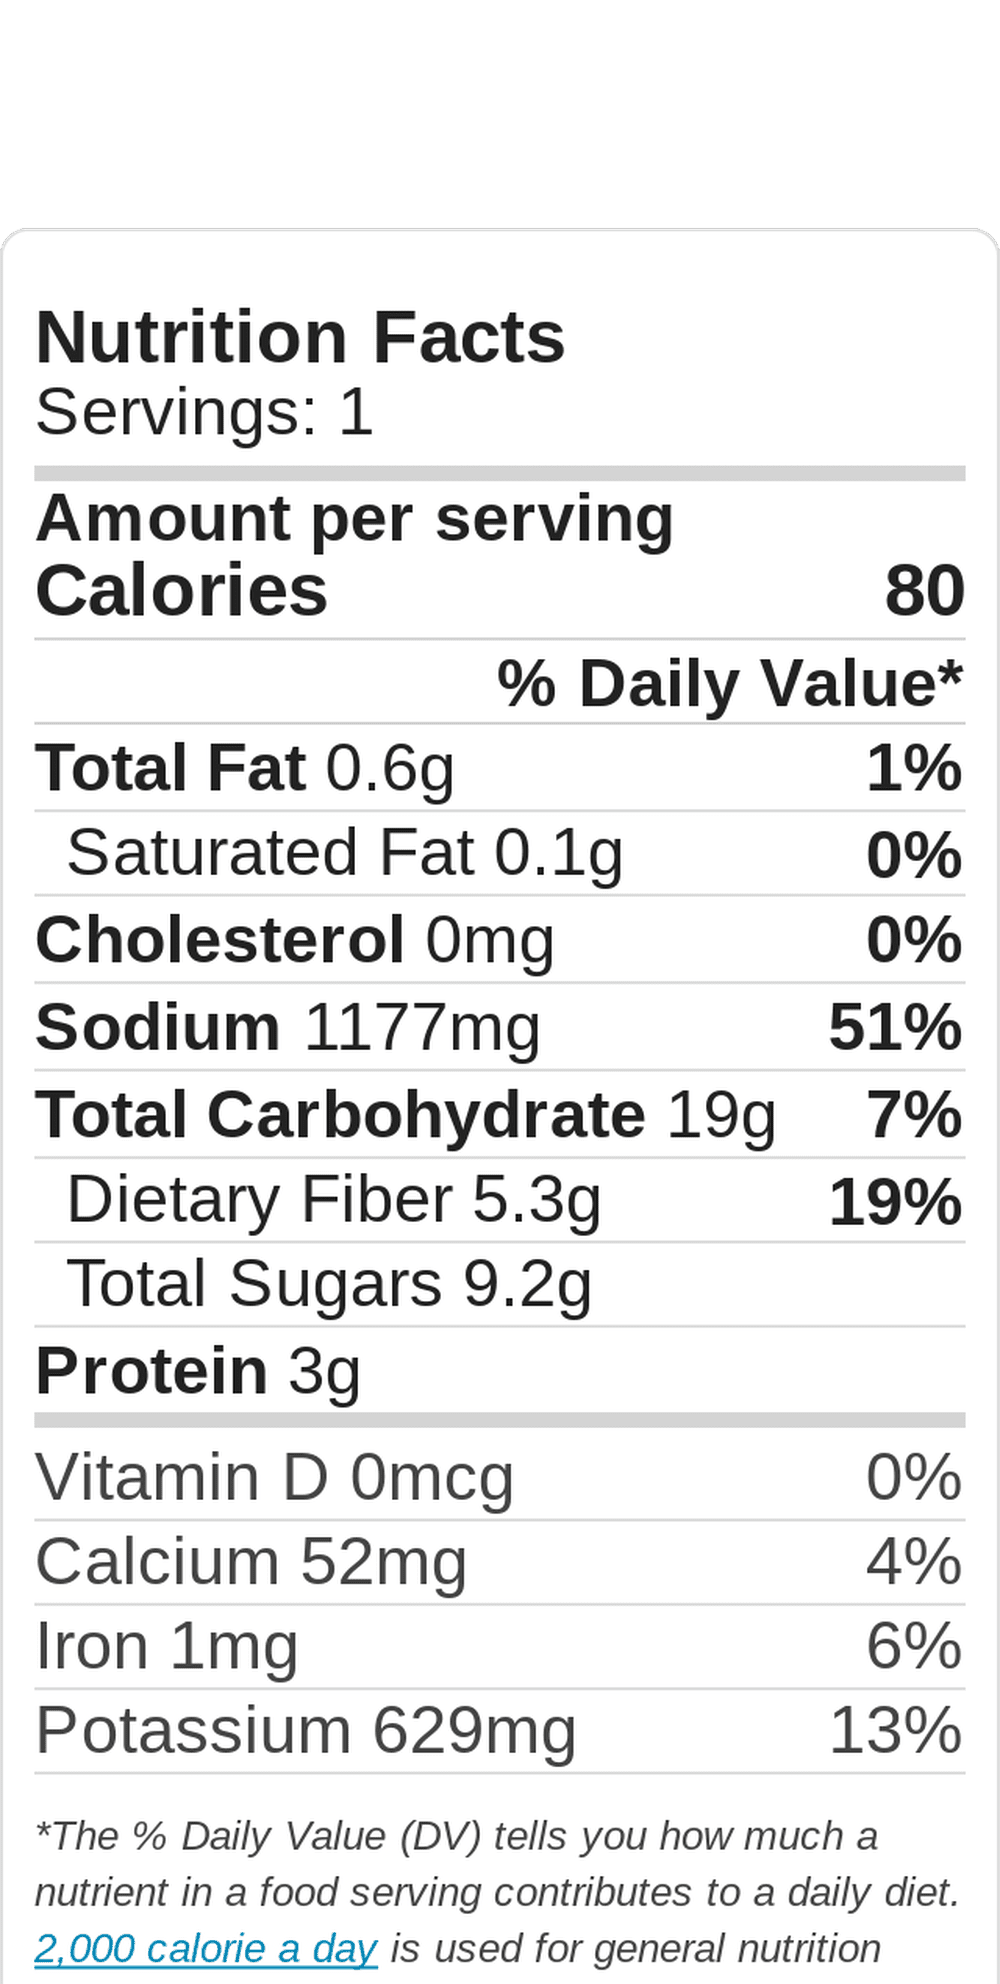 Nutritional data for fresh salsa. One serving is approx. the amount made in one recipe.